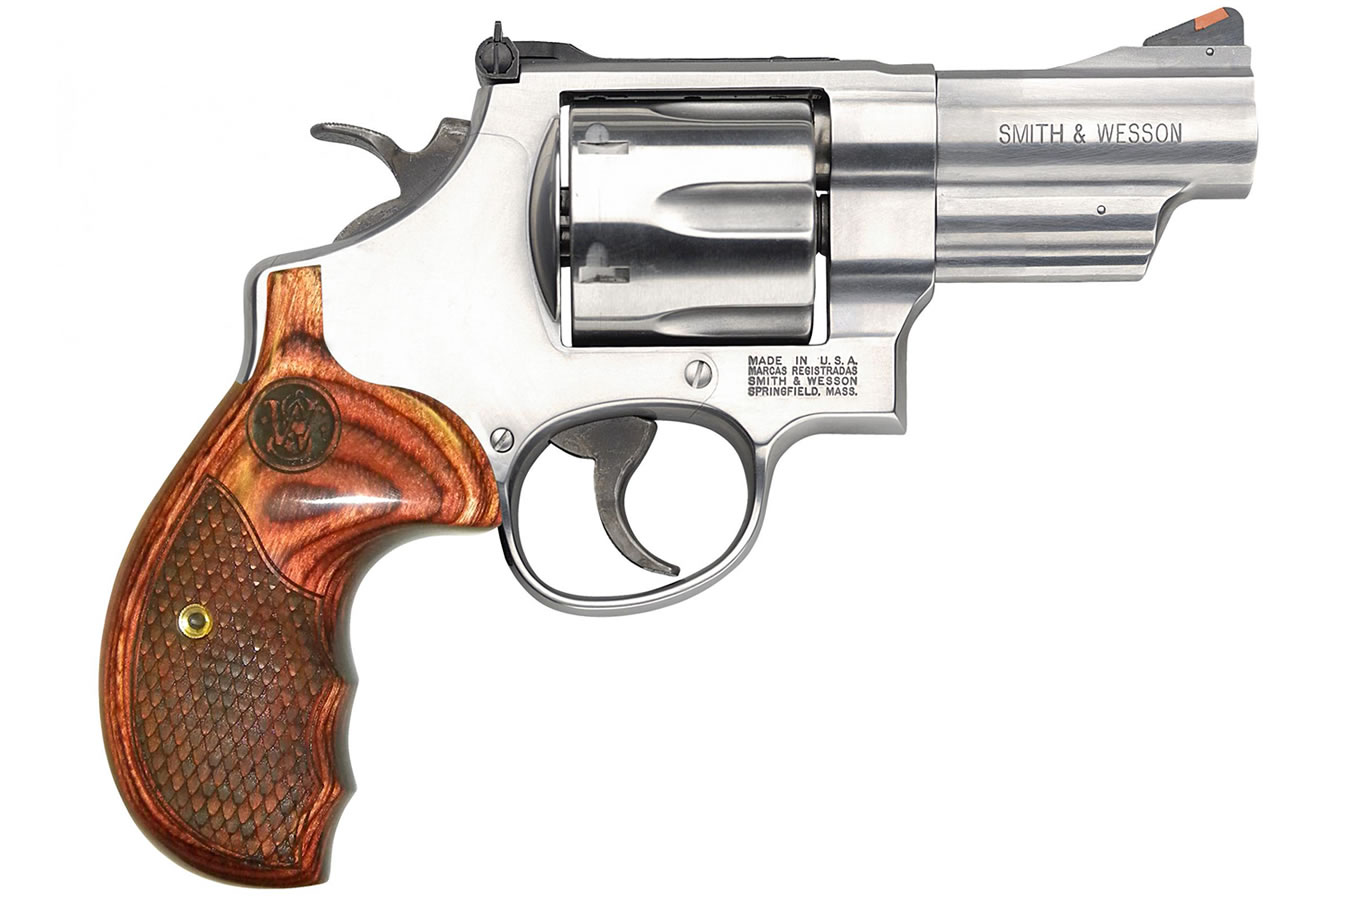 629 Deluxe 44 Magnum Revolver with Textured Wood Grips